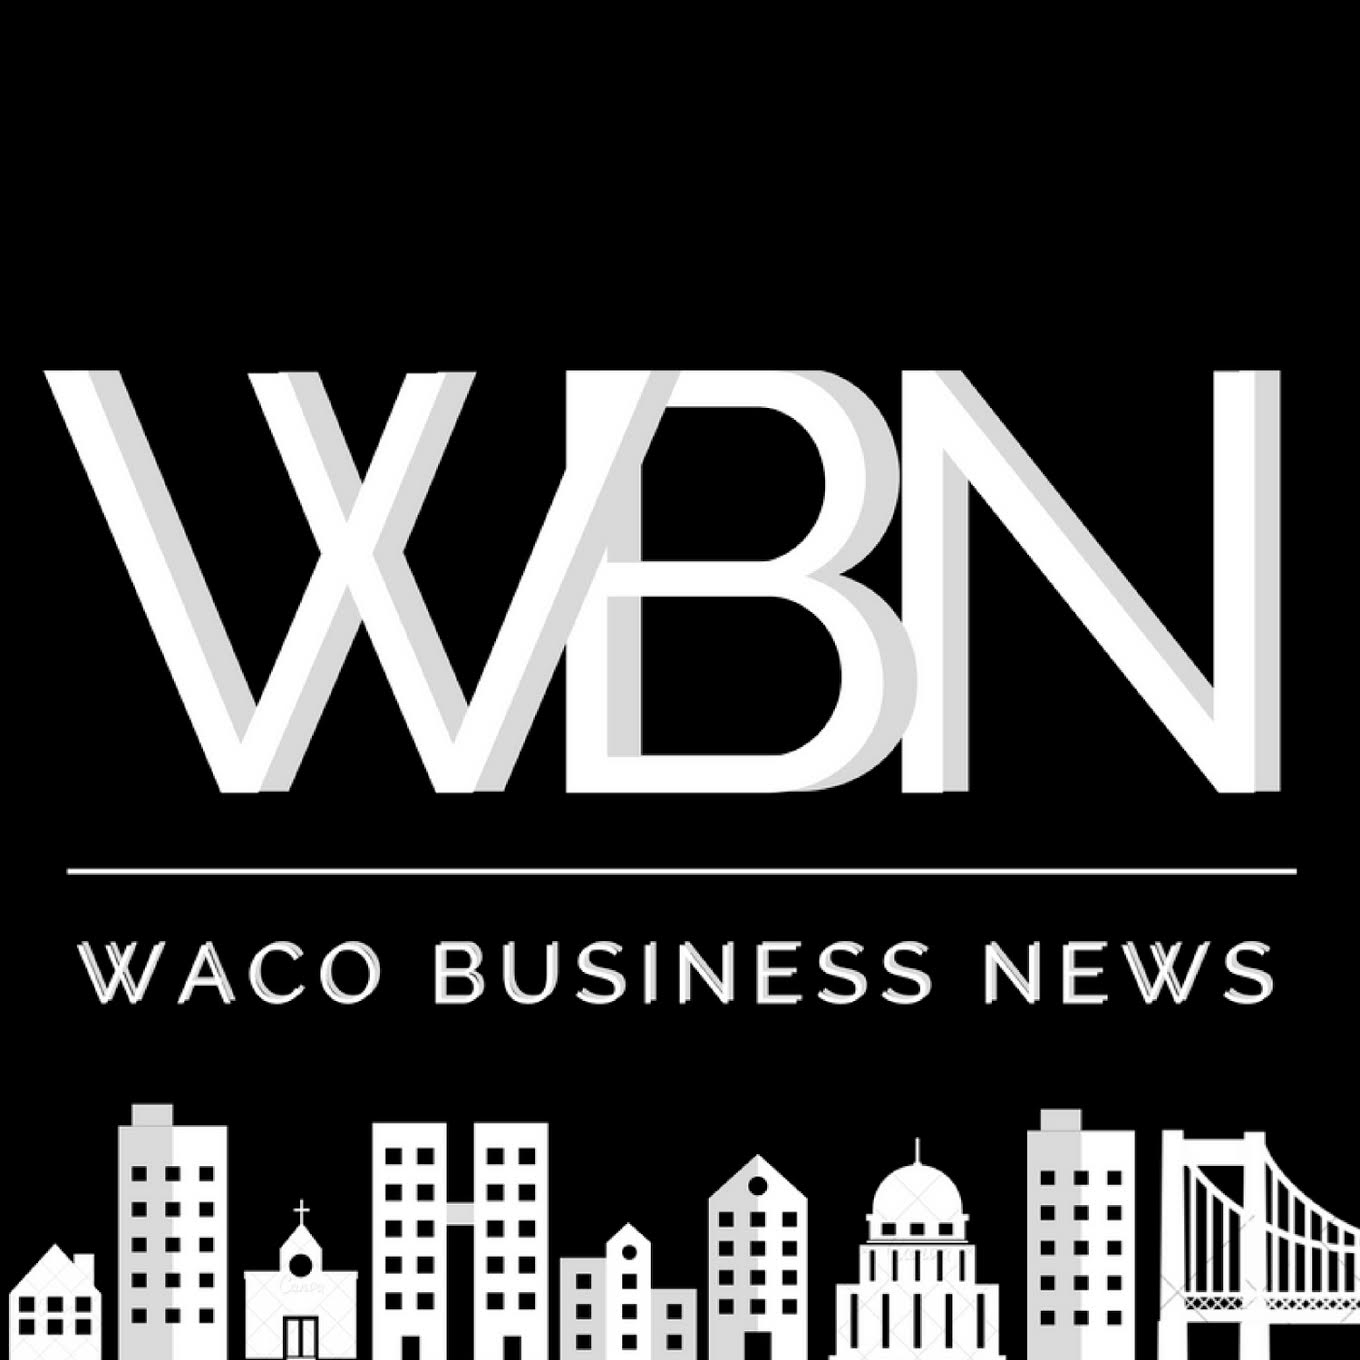 Waco Business News